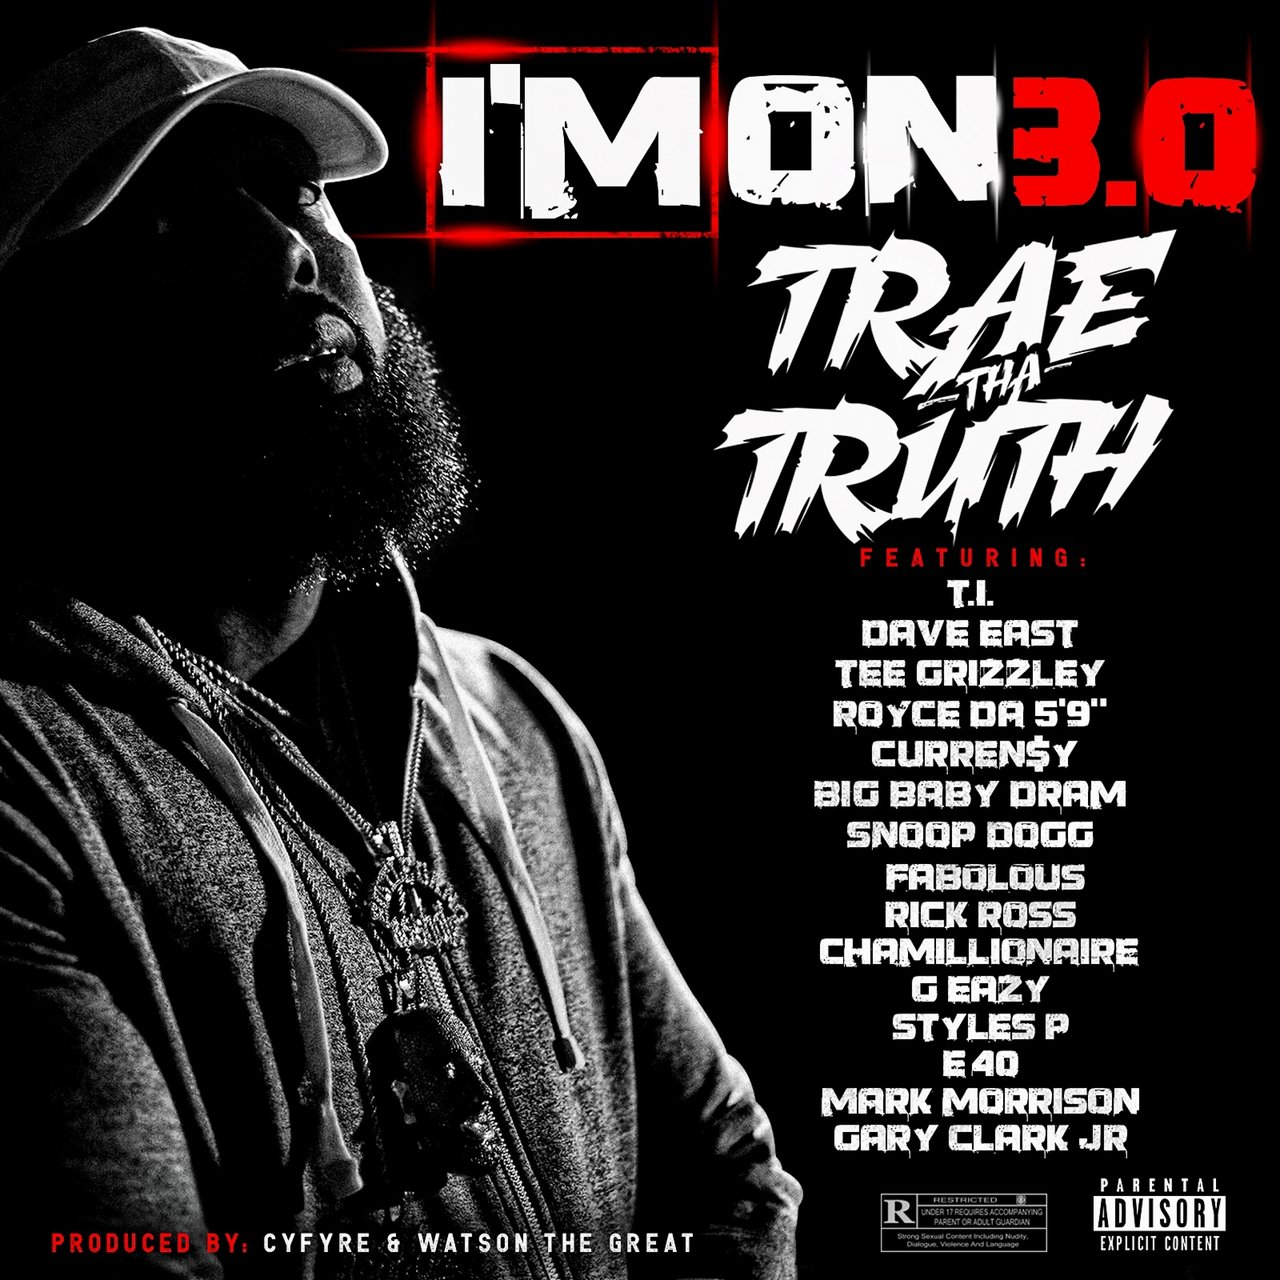 I'm On 3.0 (feat. T.I., Dave East, Tee Grizzley, Royce da 5'9